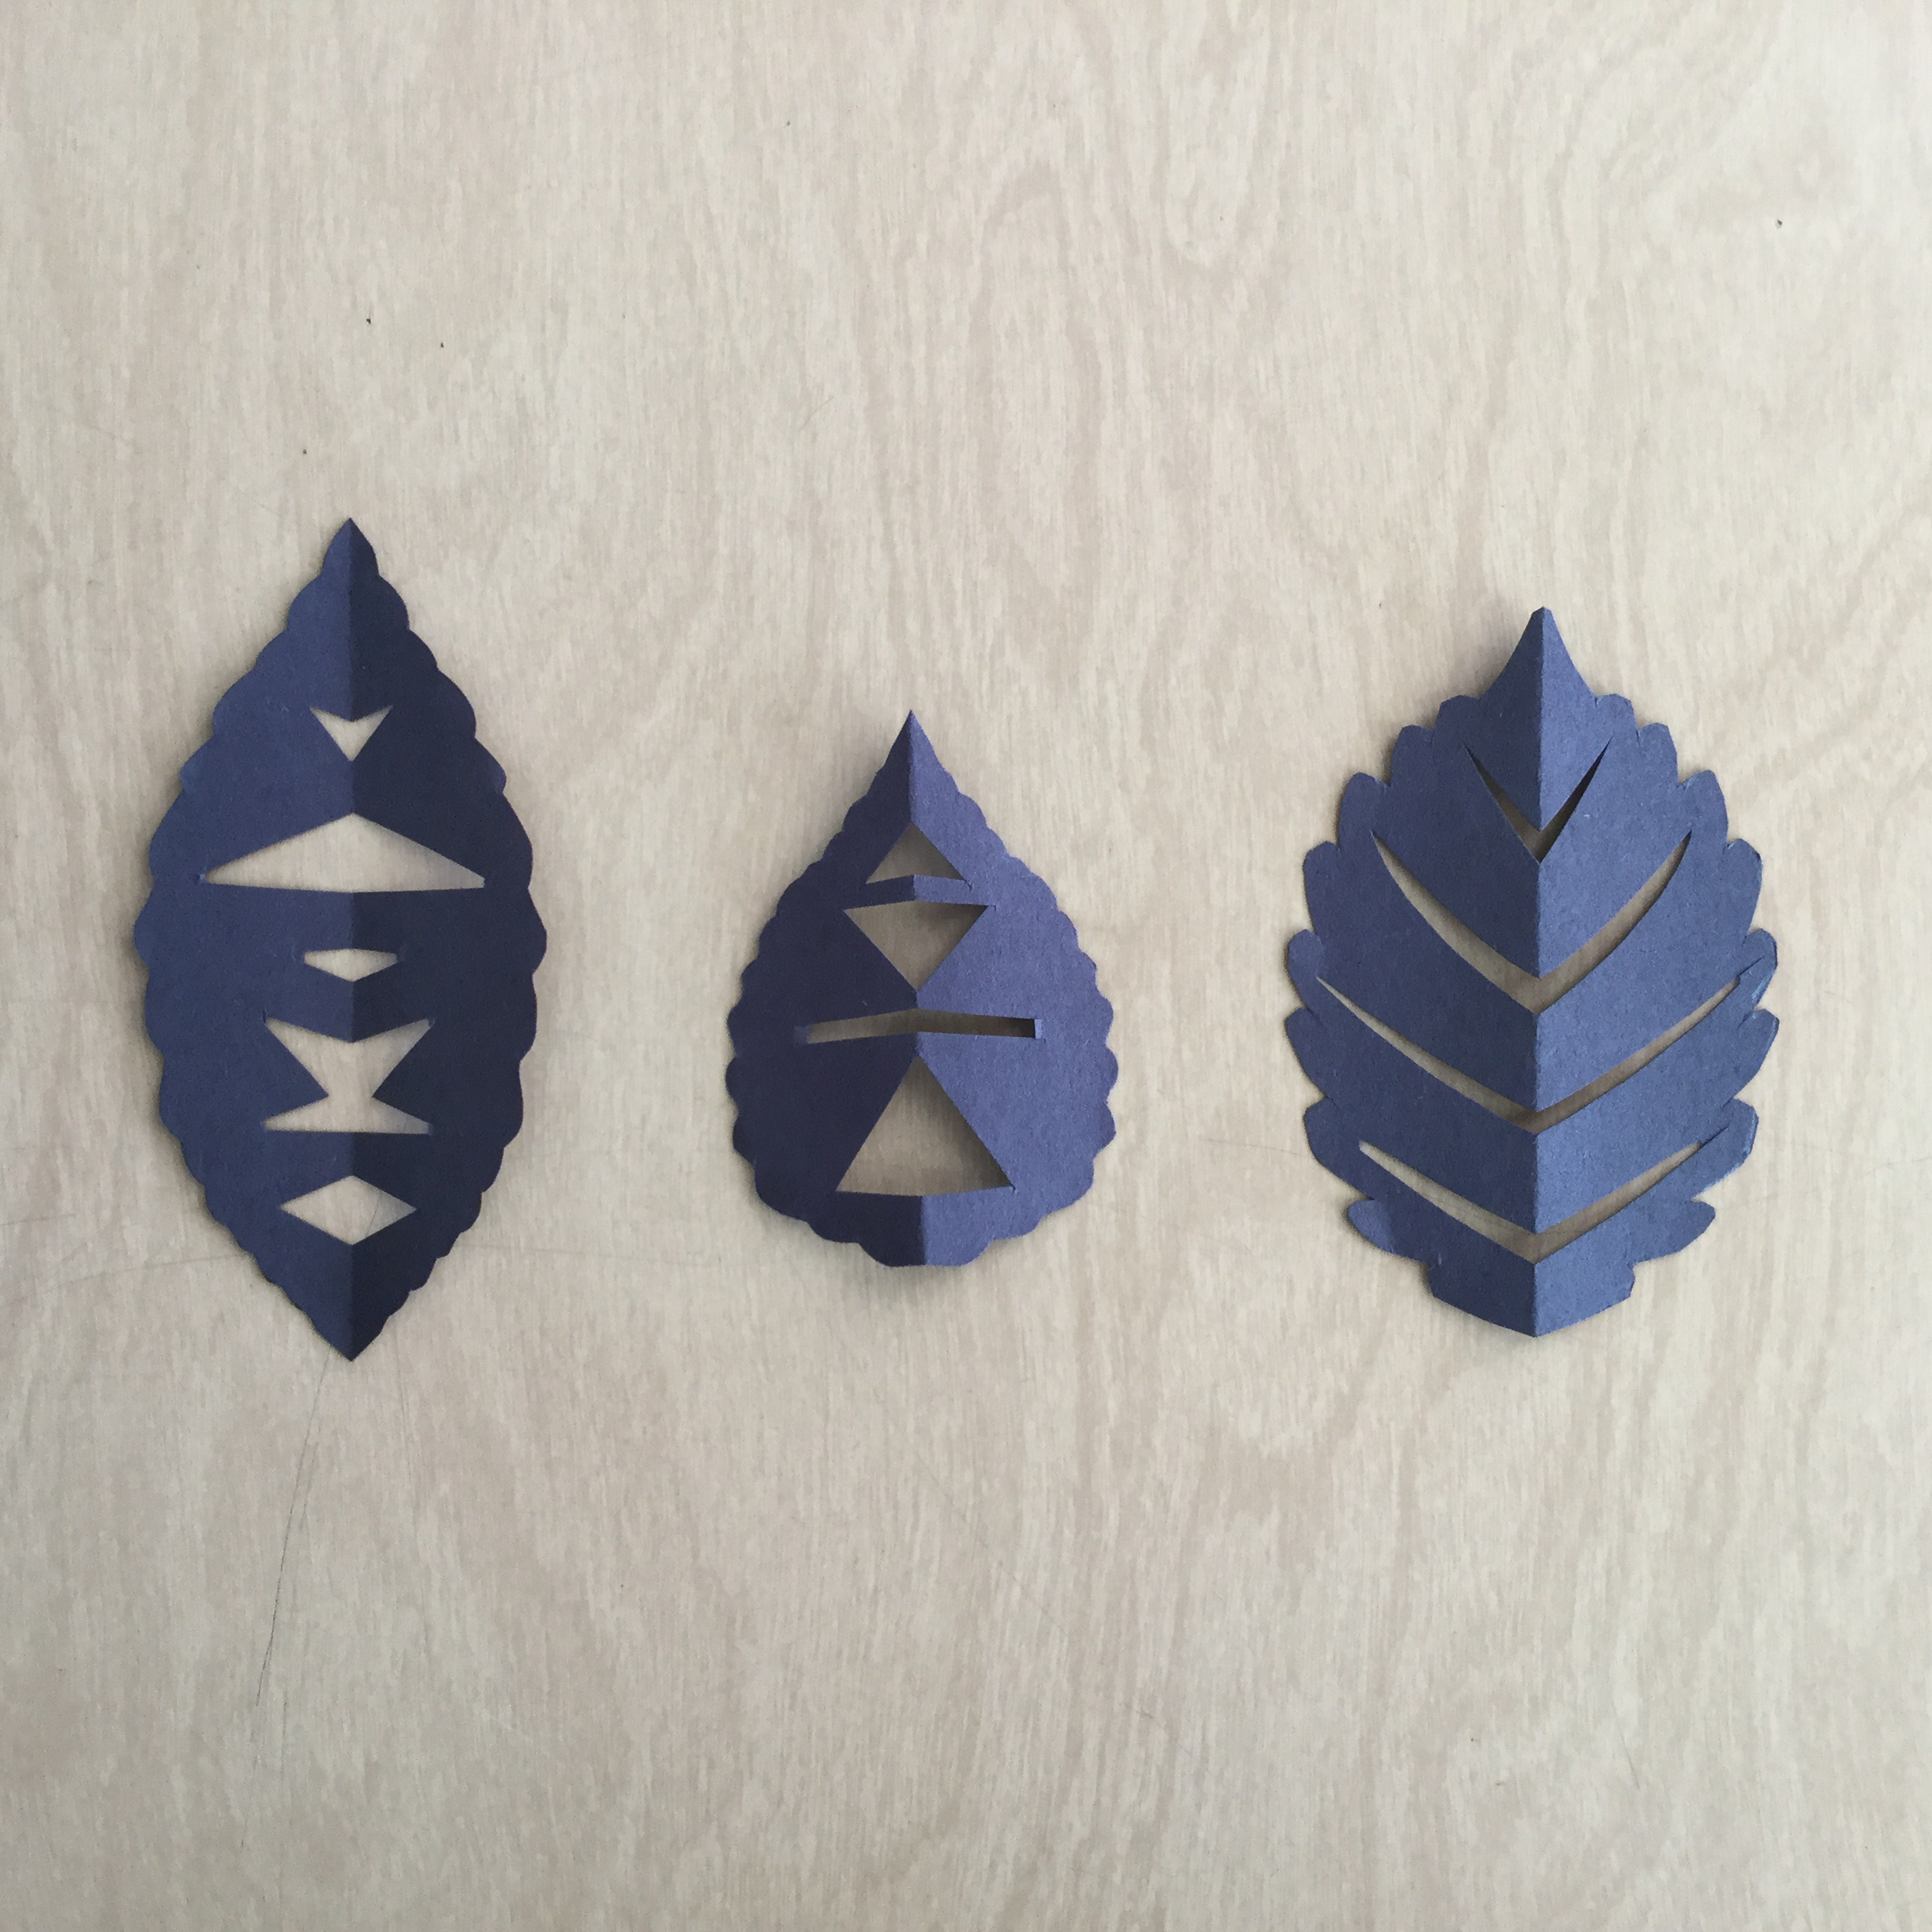 Paper leaves designed by student ready to be transformed by technology